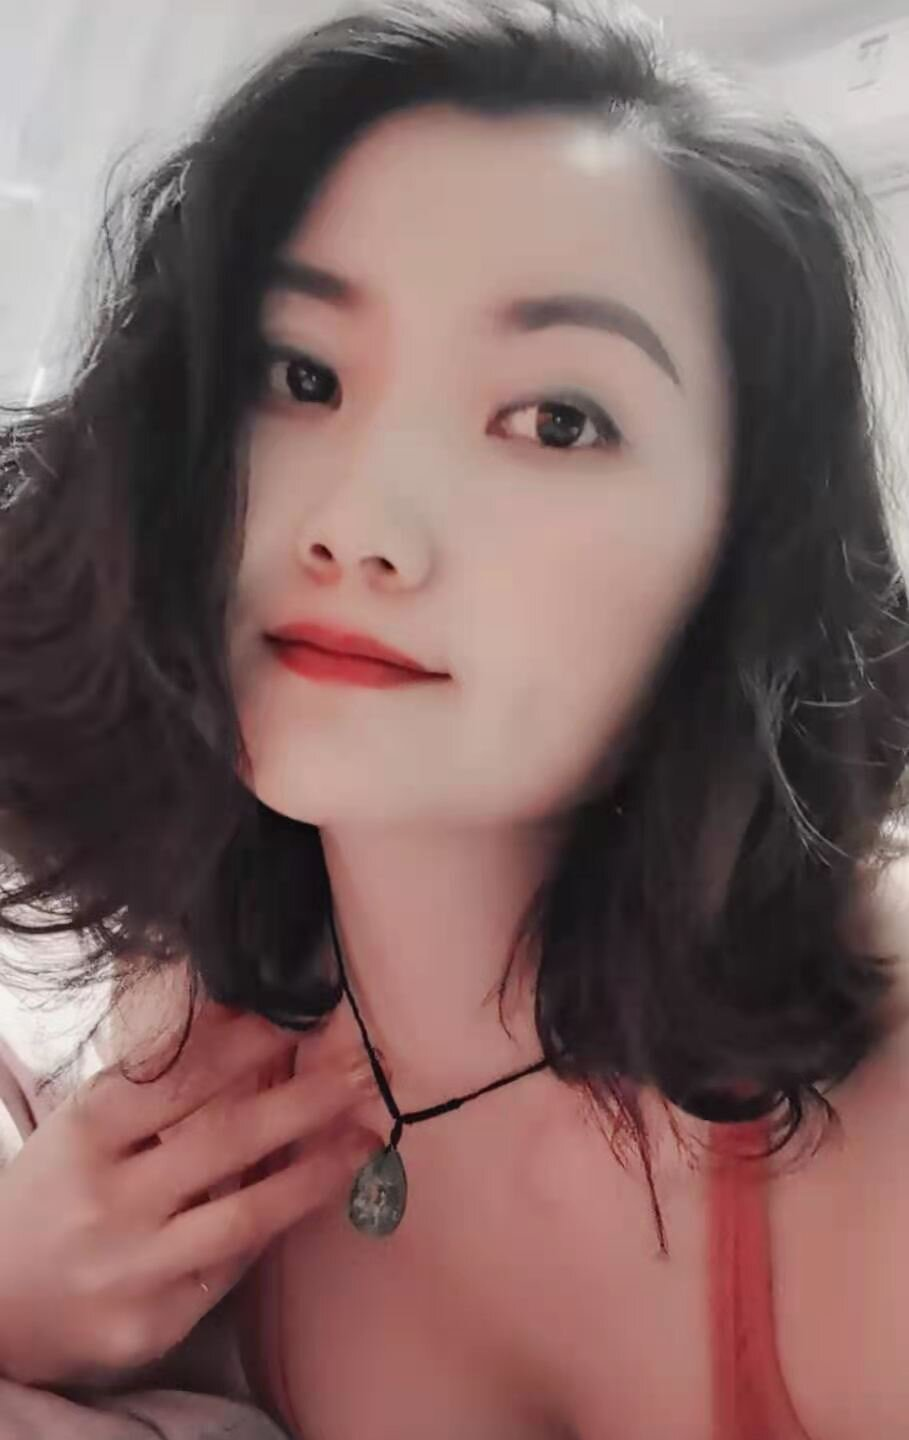 lindywei at StripChat